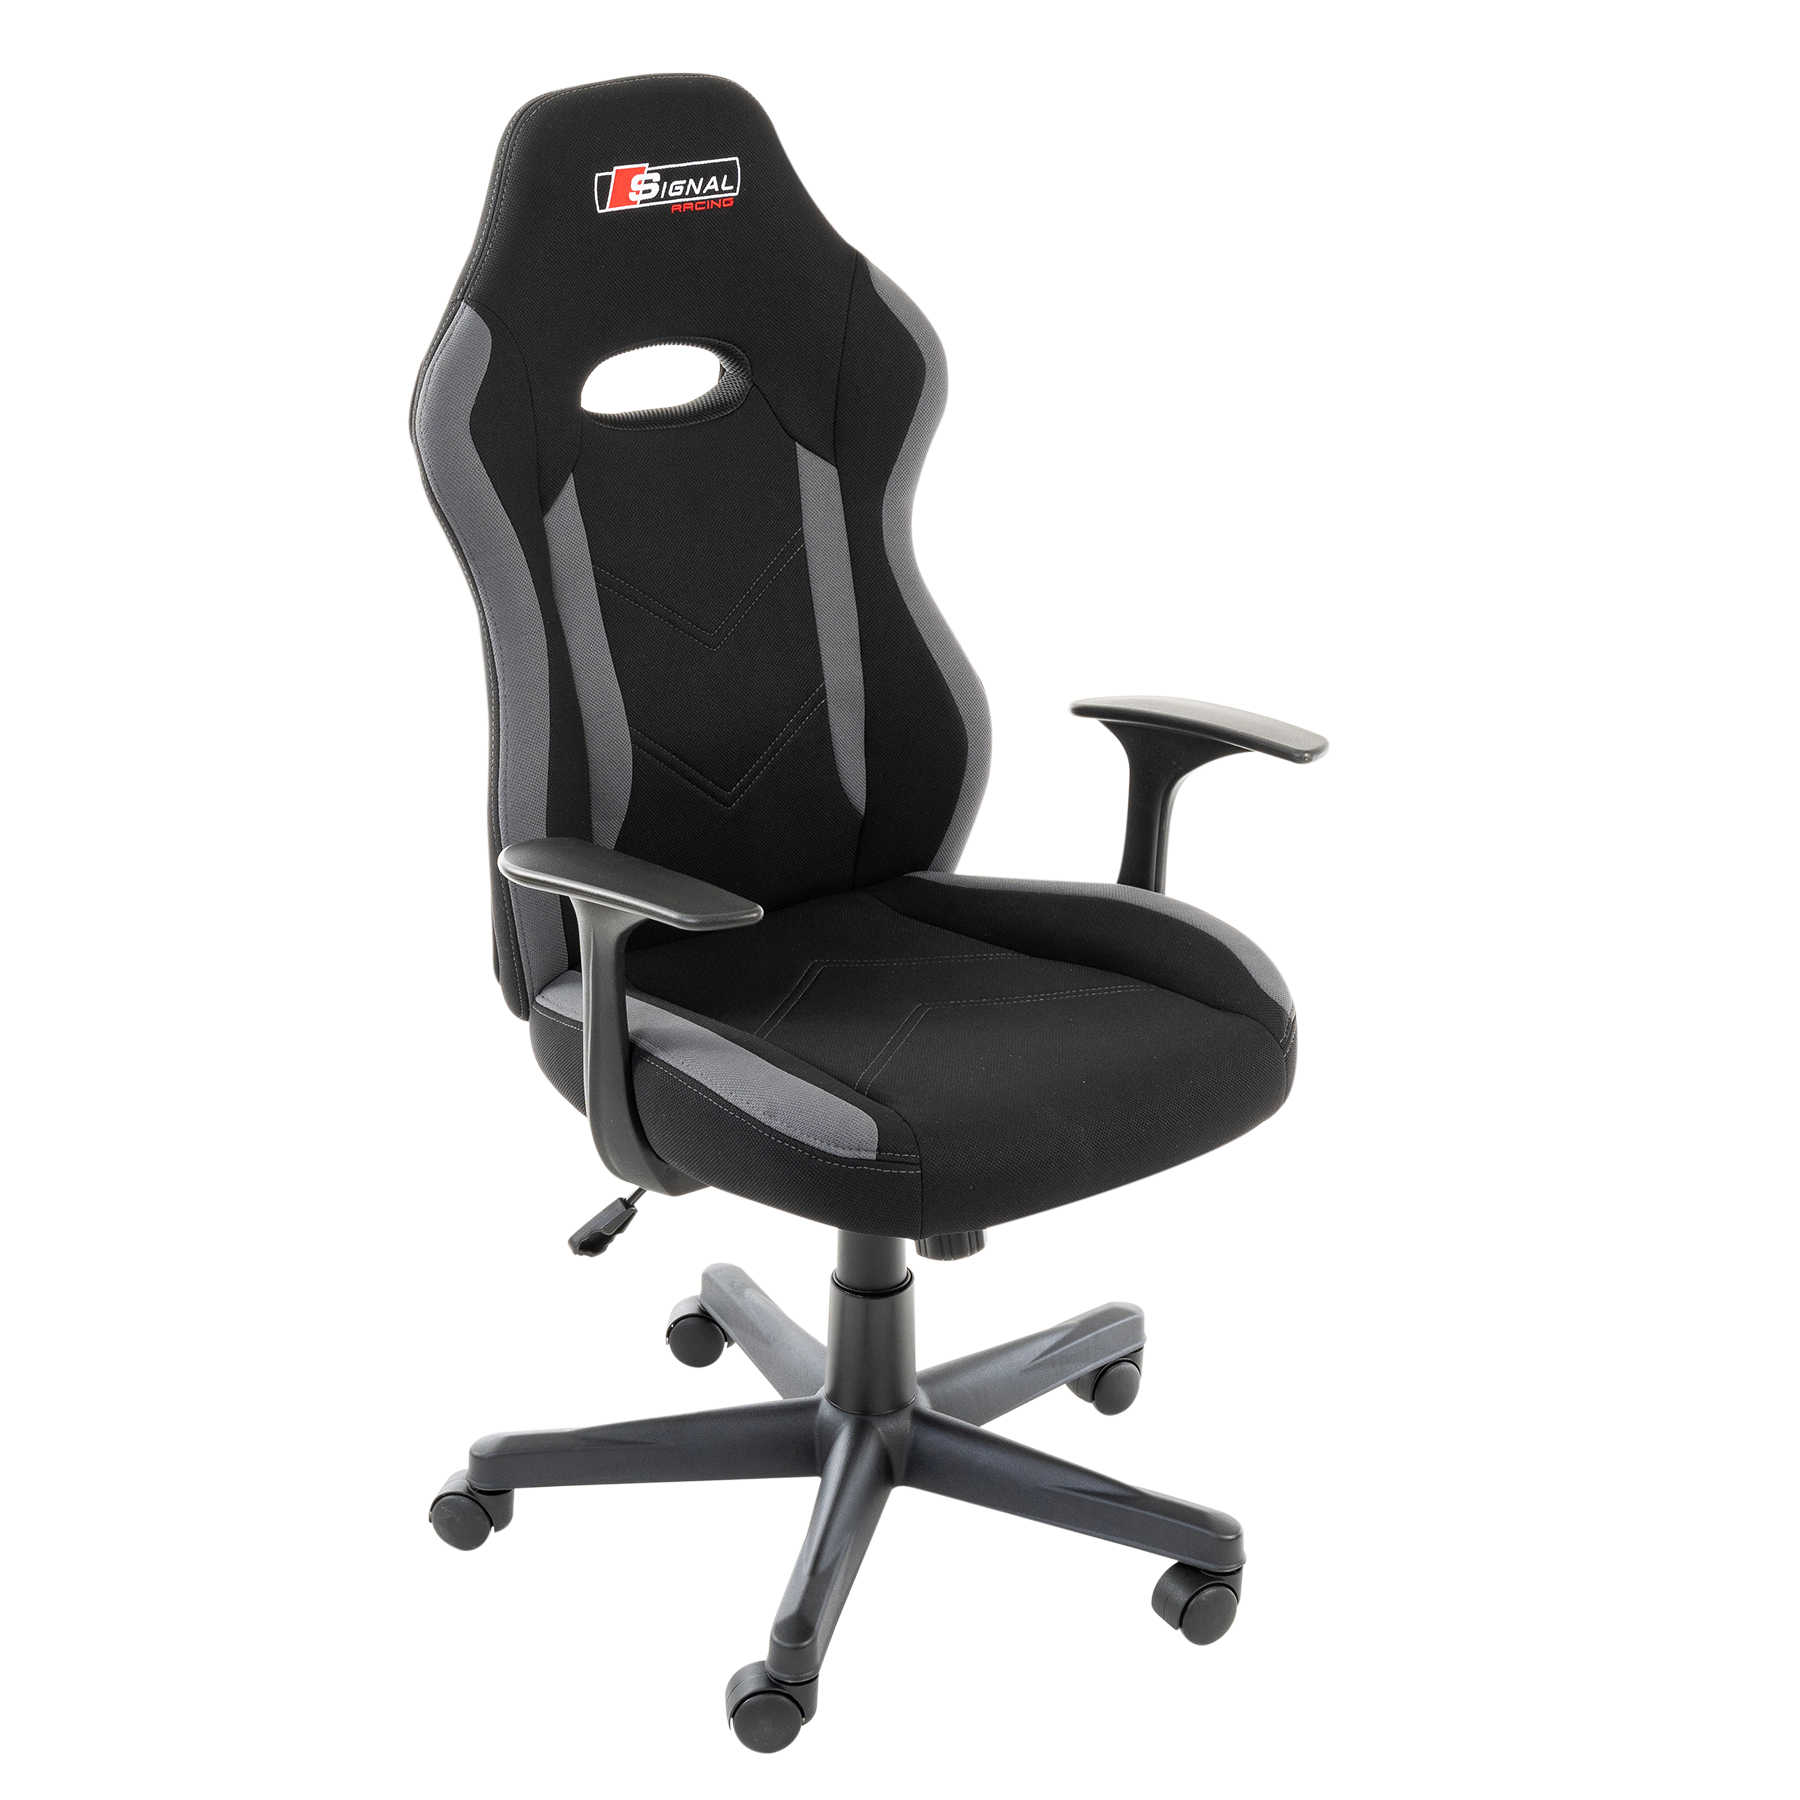 Signal Rapid Gamer Chair Computer Chair Executive Chair Office Chair Desk Chair Comfortable Swivel Chair Height Adjustable Sogo24 Beddog Dog Beds Cat Caves